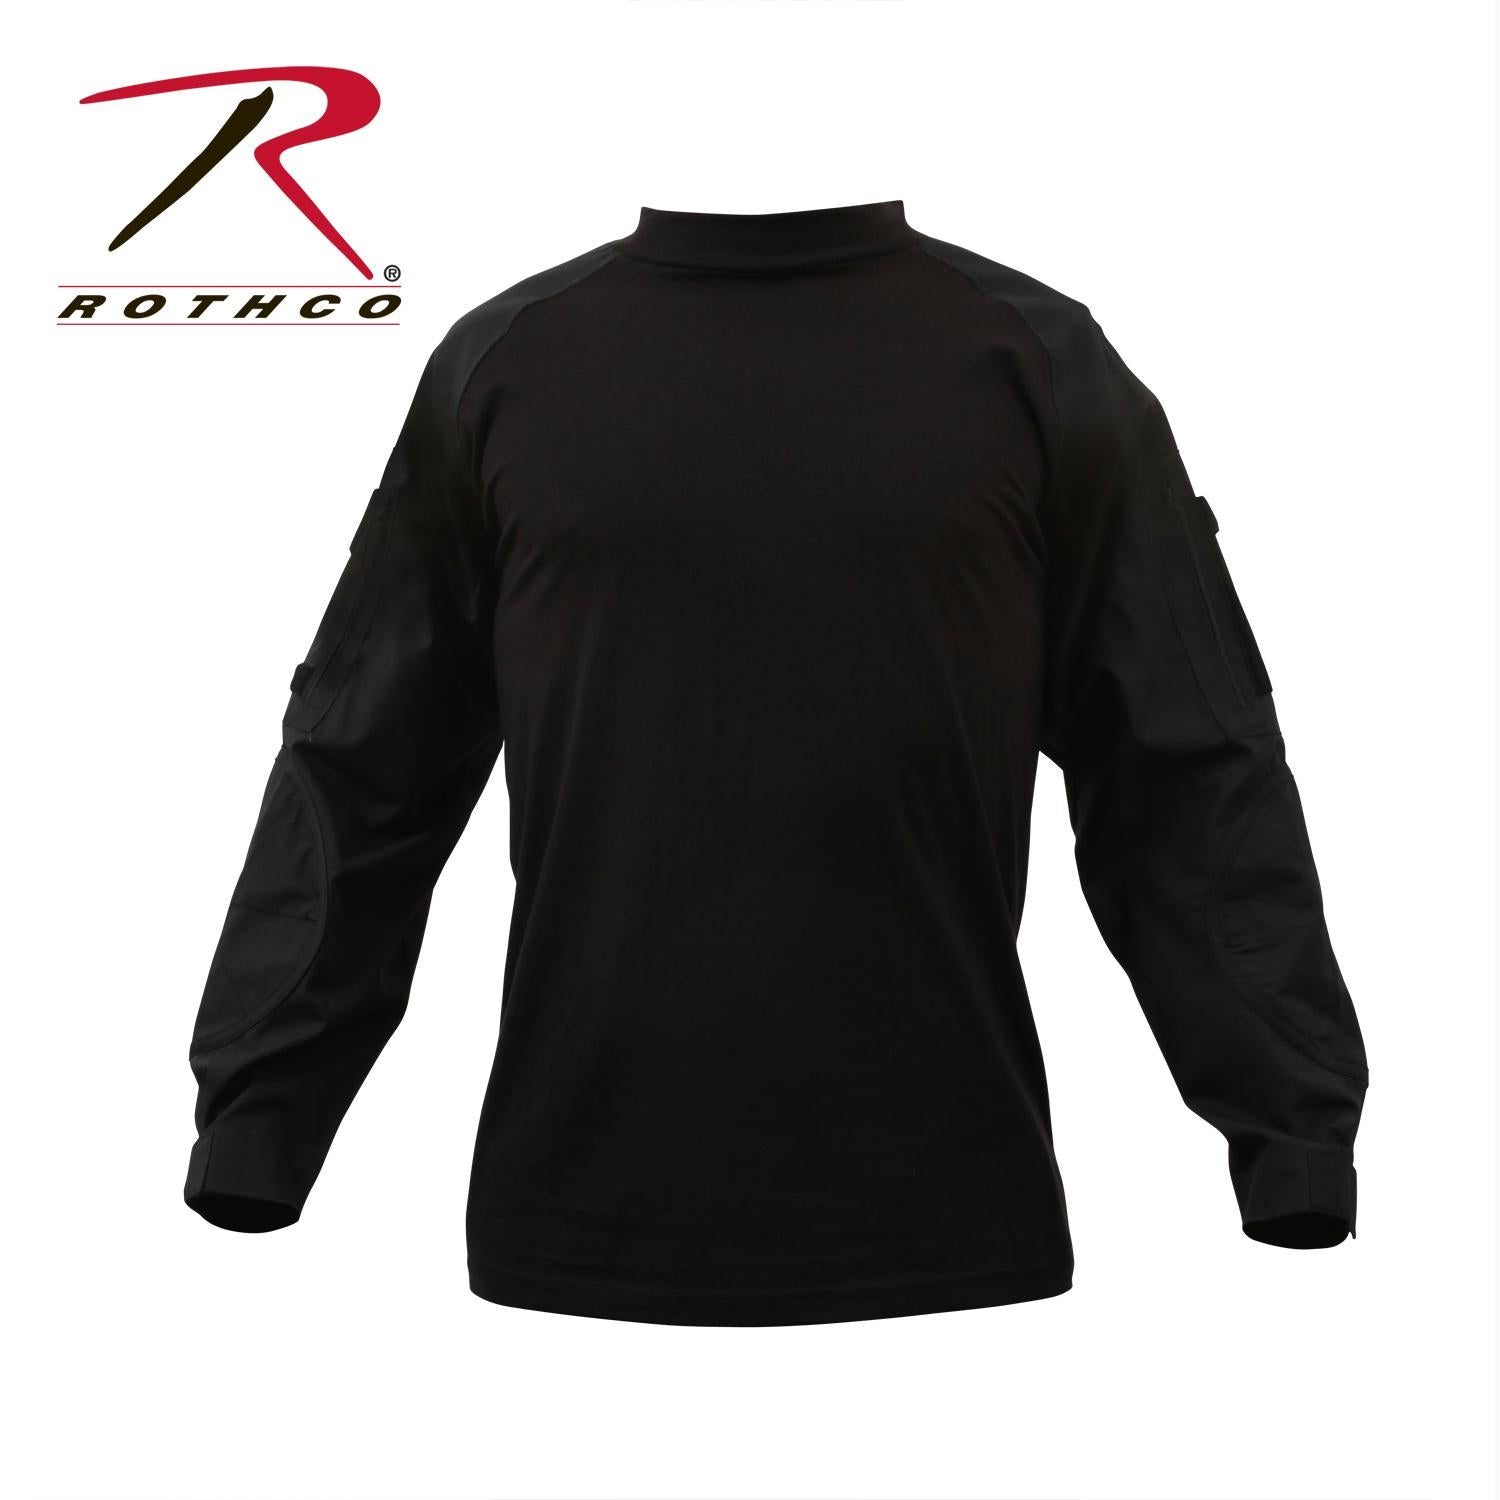 Rothco Military FR NYCO Combat Shirt - Black / 2XL